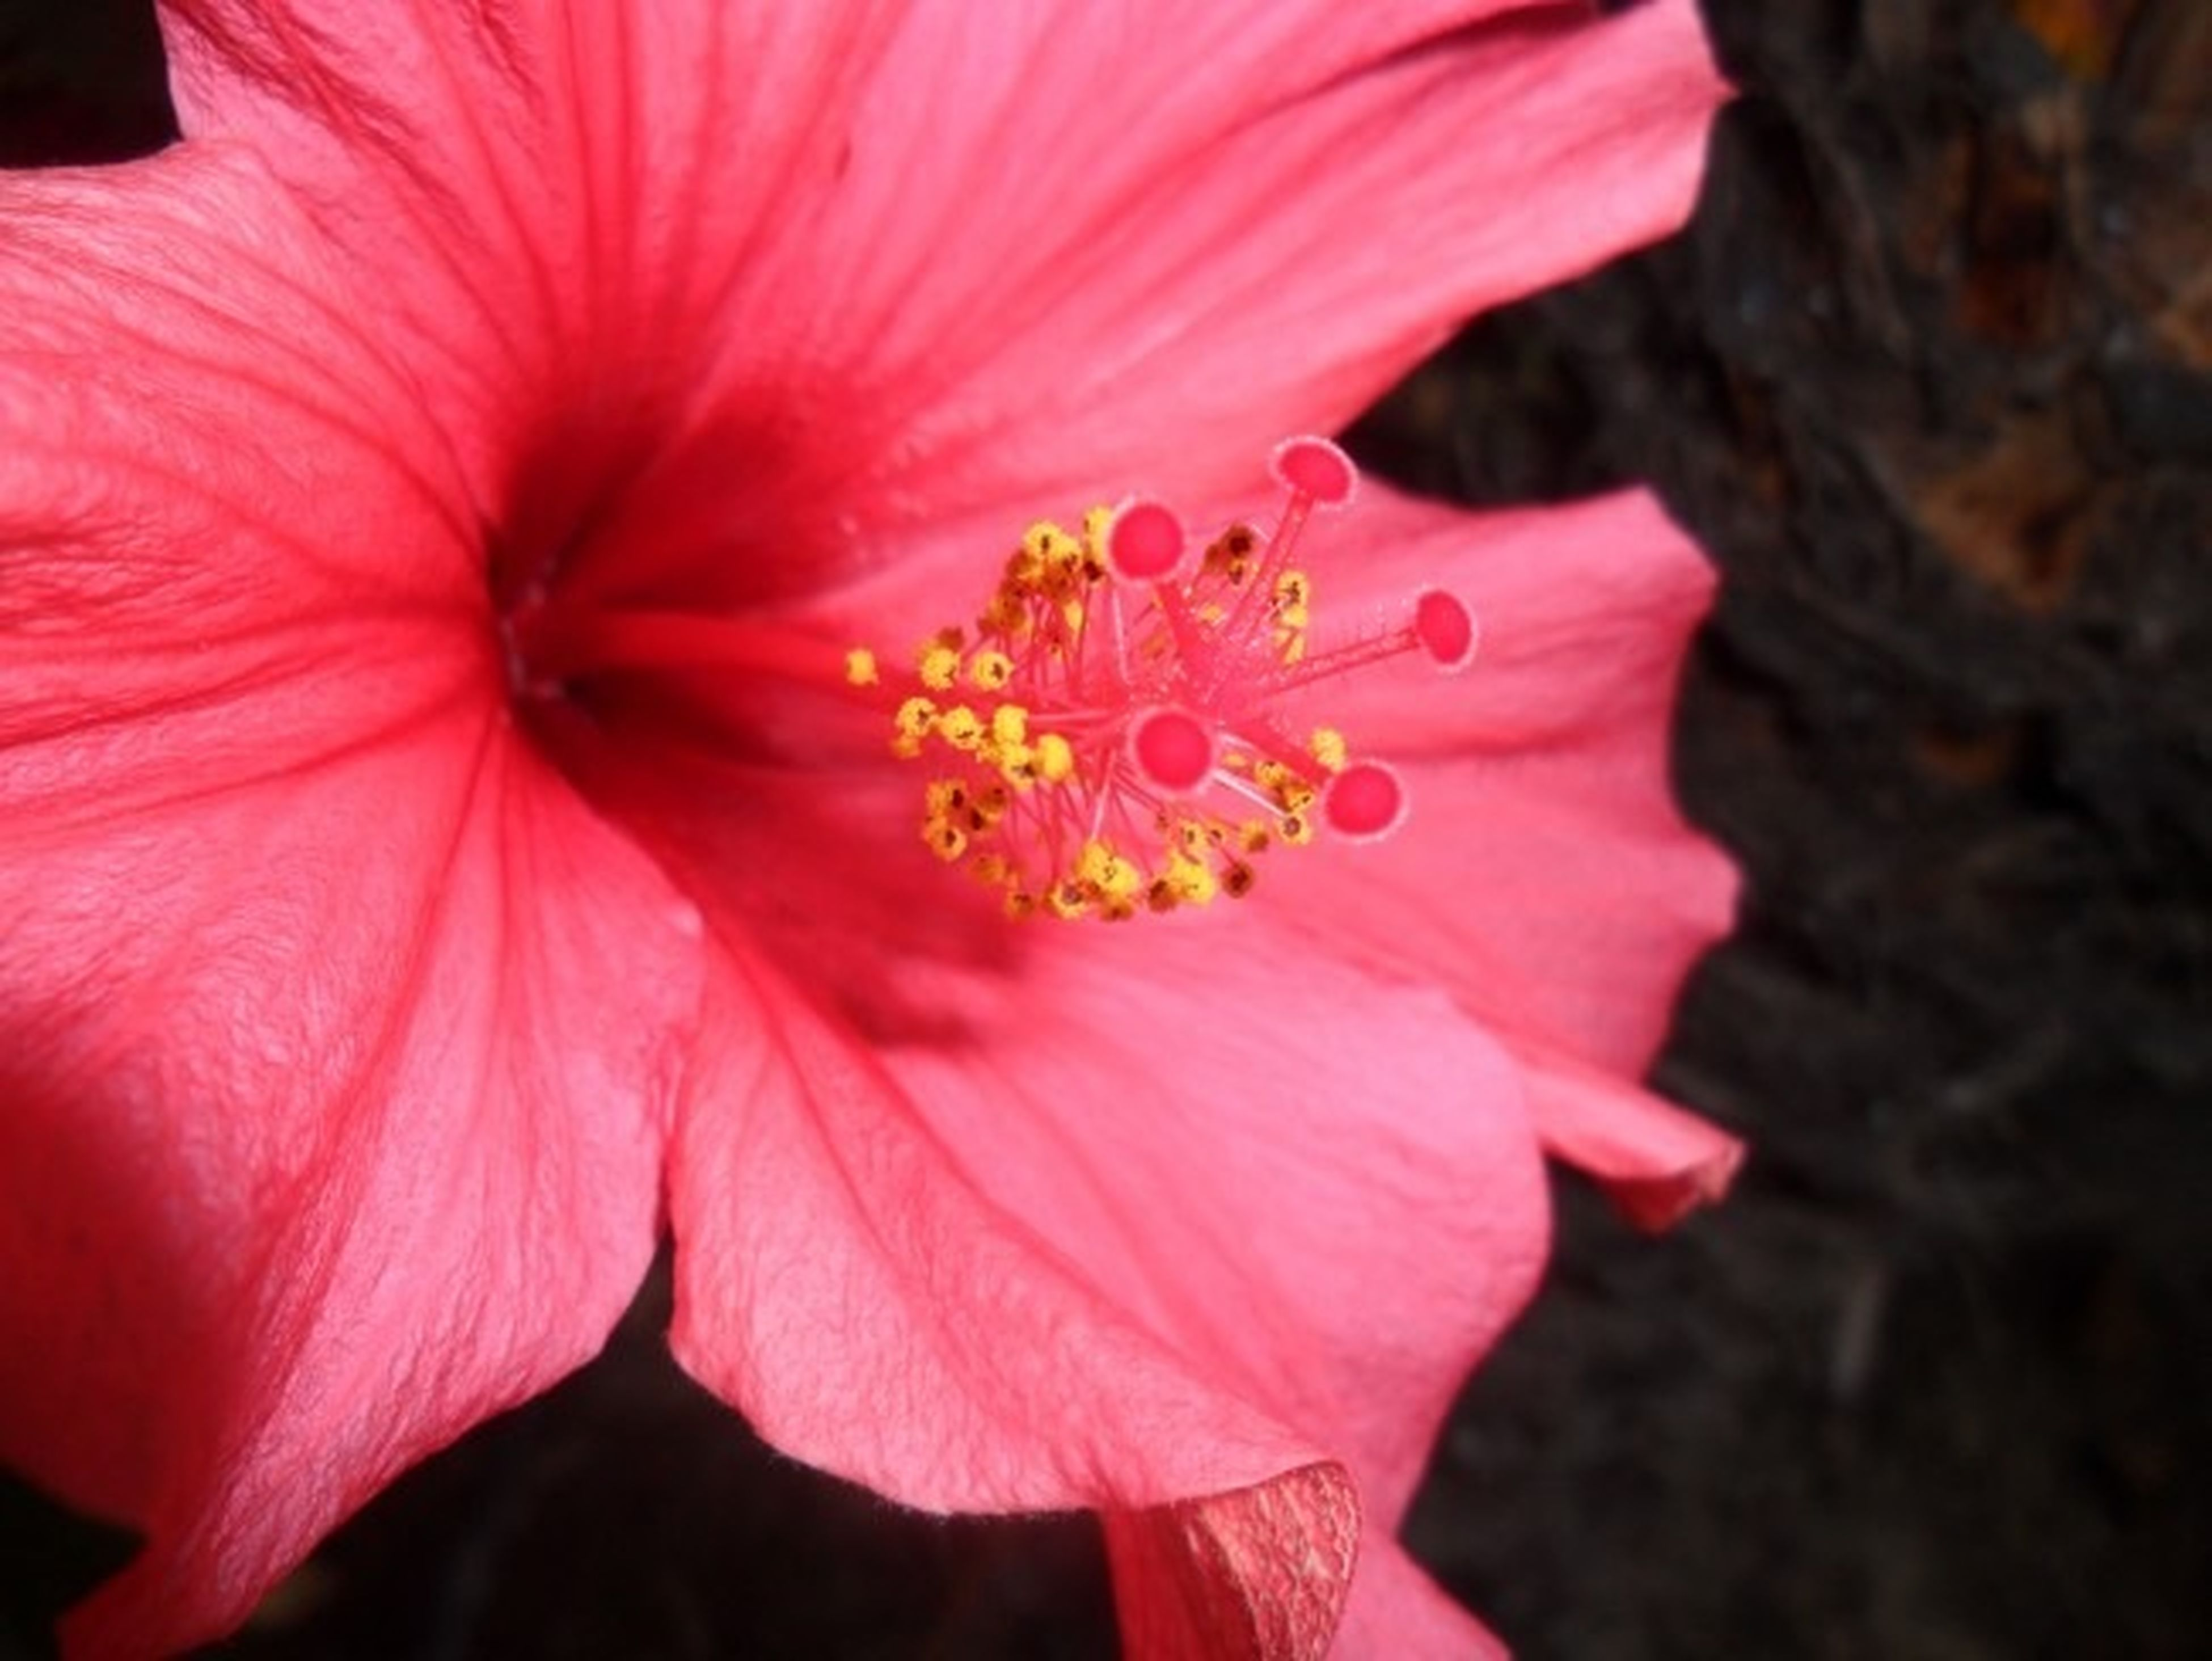 flower, petal, flower head, freshness, fragility, beauty in nature, growth, close-up, stamen, pink color, single flower, pollen, nature, blooming, in bloom, blossom, focus on foreground, botany, pink, plant